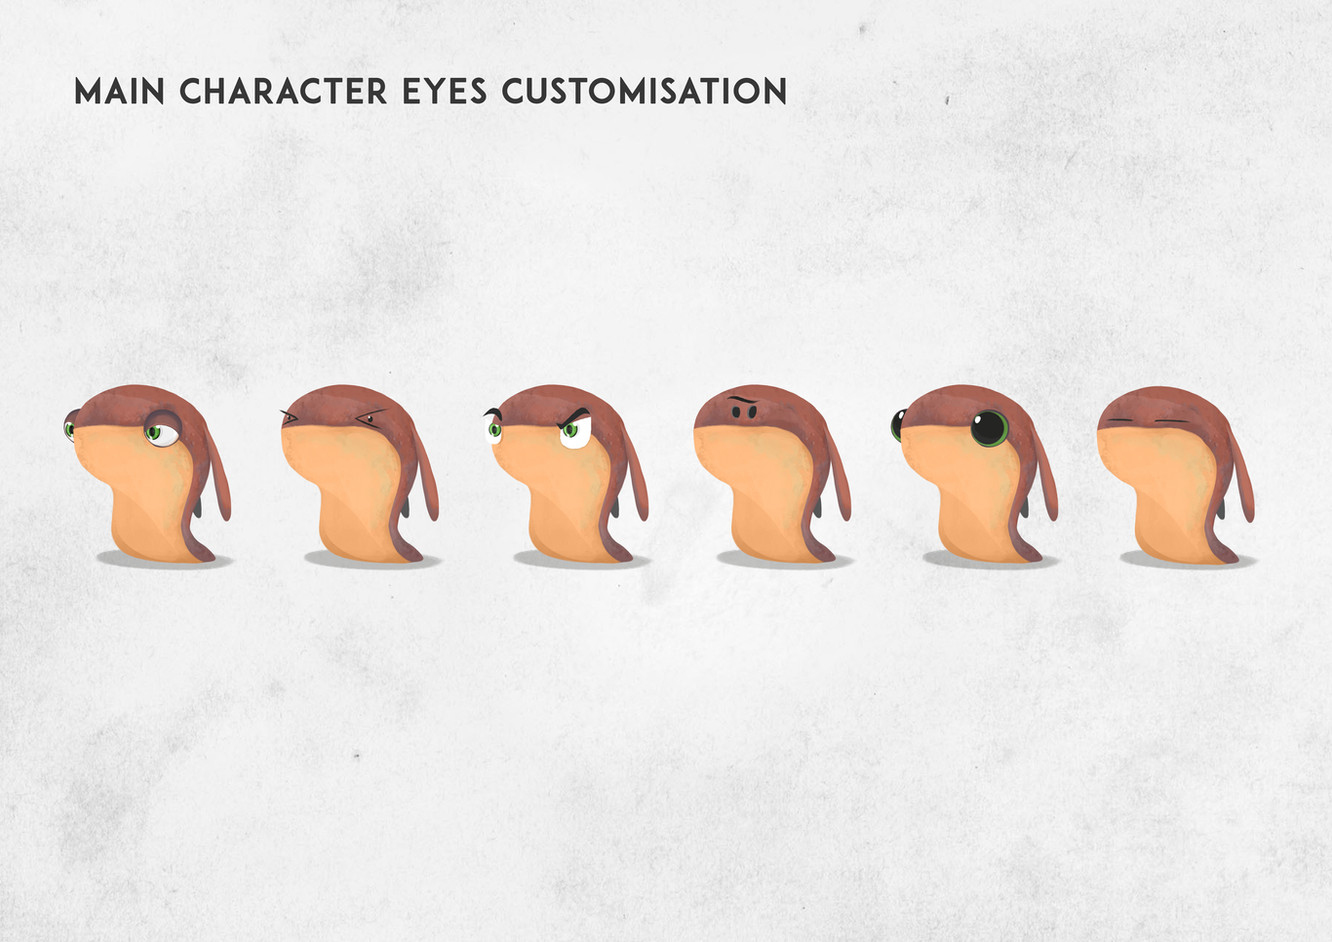 Main Character Eyes Customisation